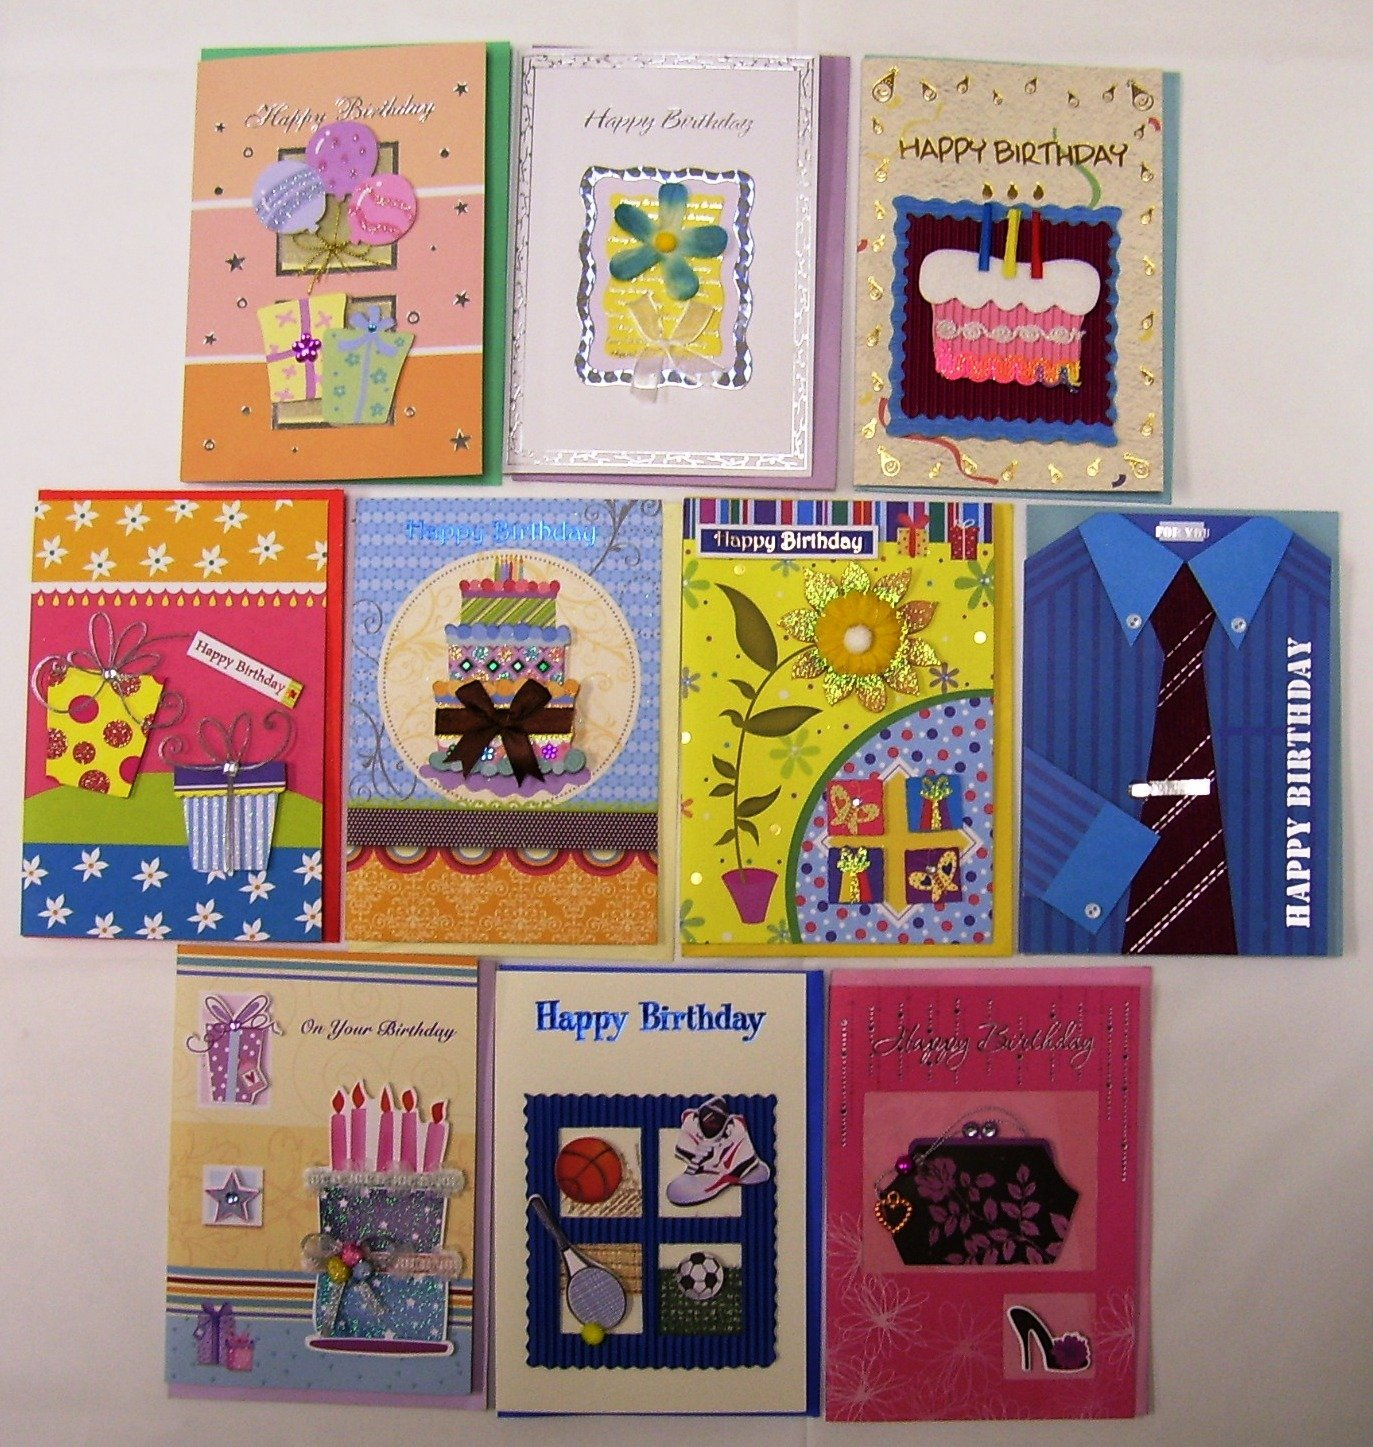 Deluxe Handmade Birthday Greeting Cards 10 Pack Walmart